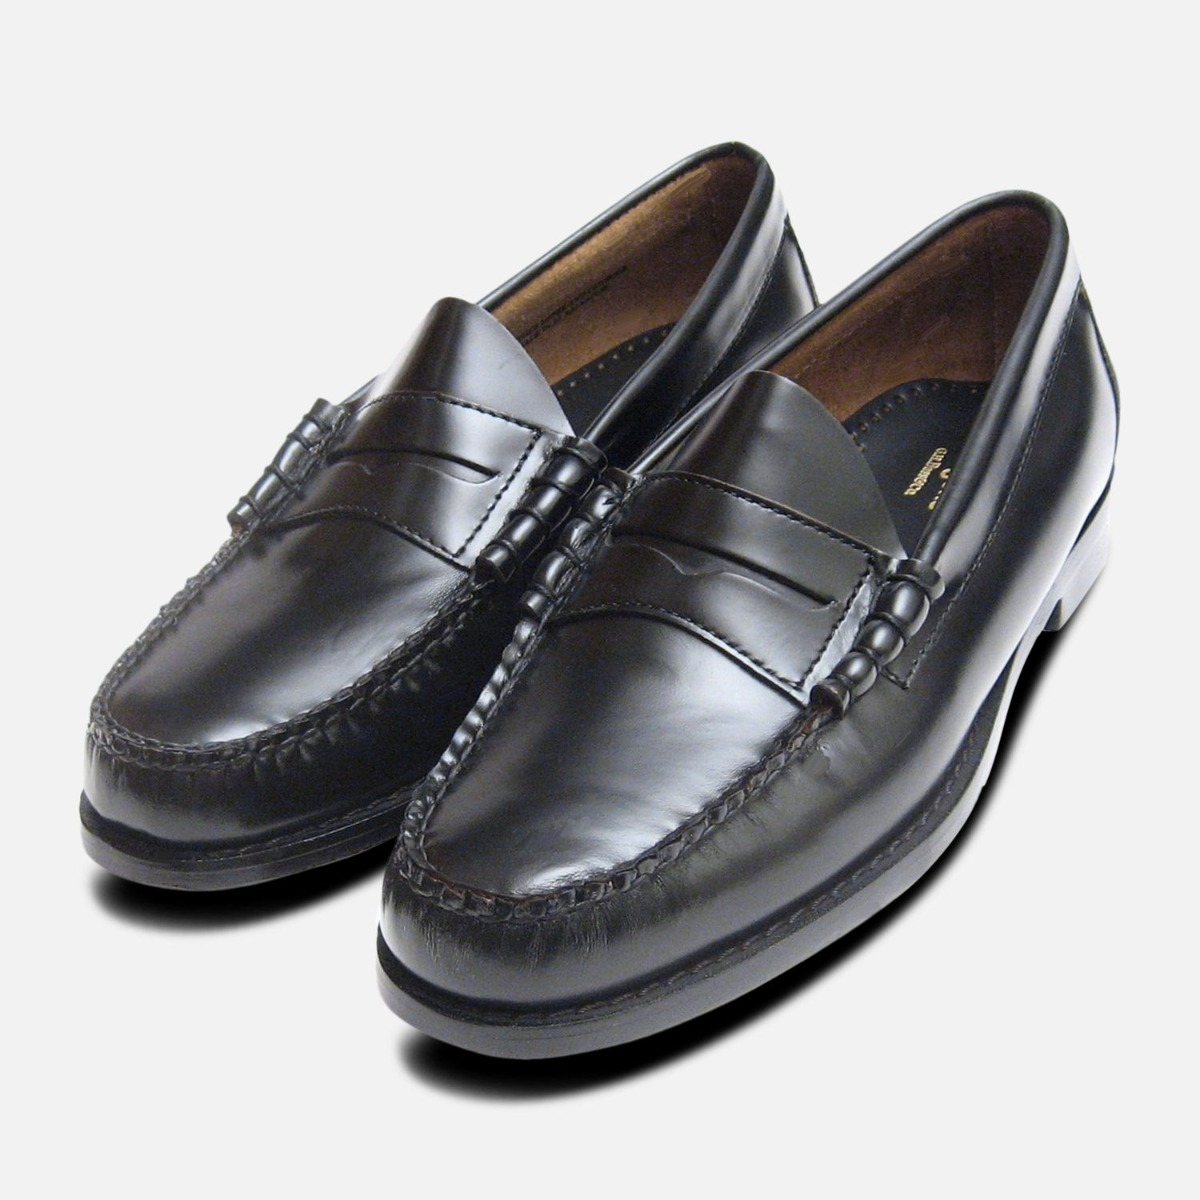 233948a0eca Details about Classic Mens Black Polished Larson Penny Loafers GH Bass  Weejuns